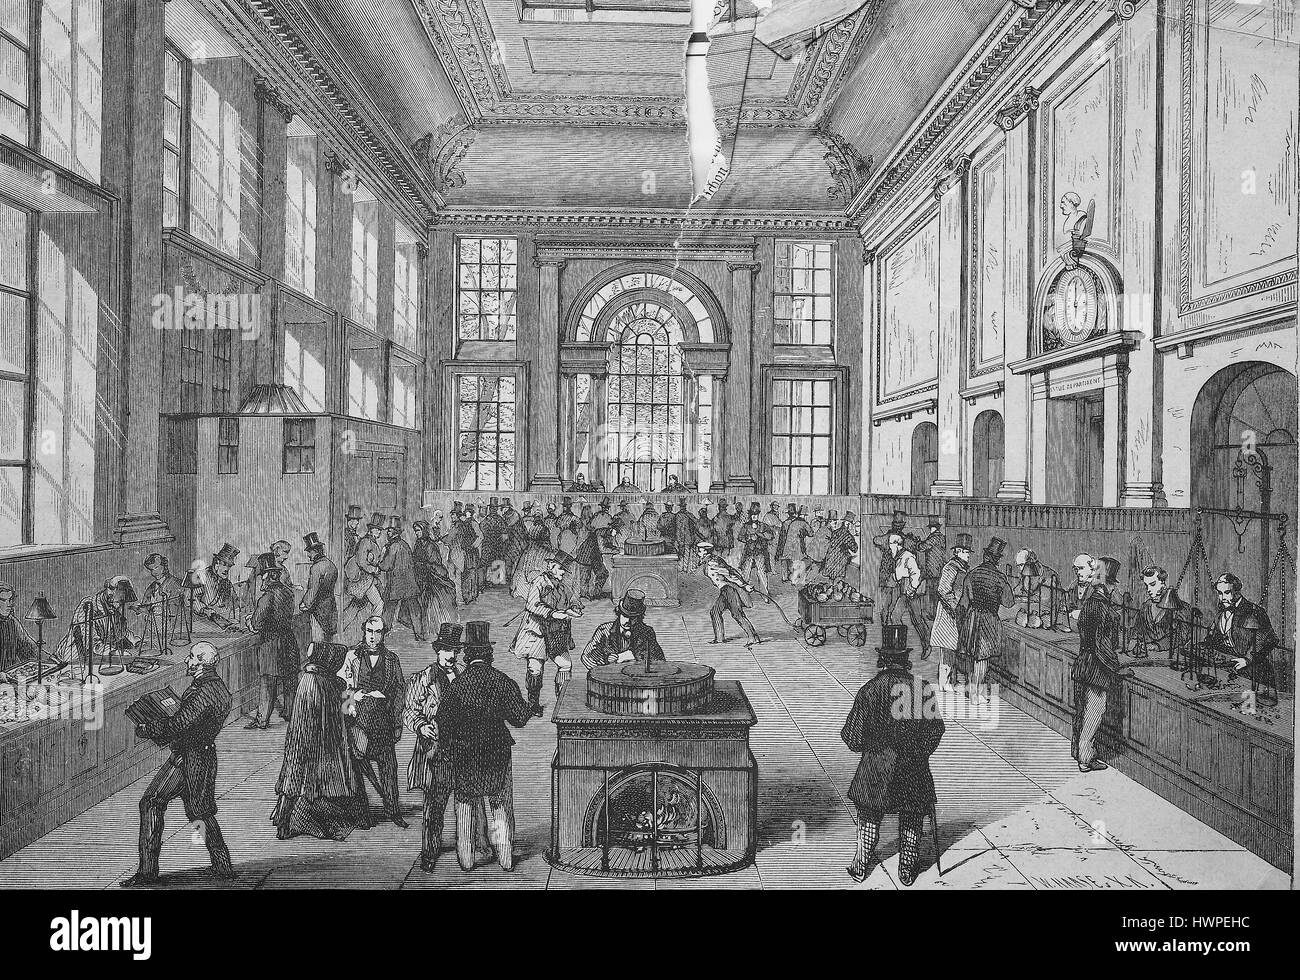 The payment Hall of the Bank of England, London, Reproduction of an original woodcut from the year 1882, digital Stock Photo